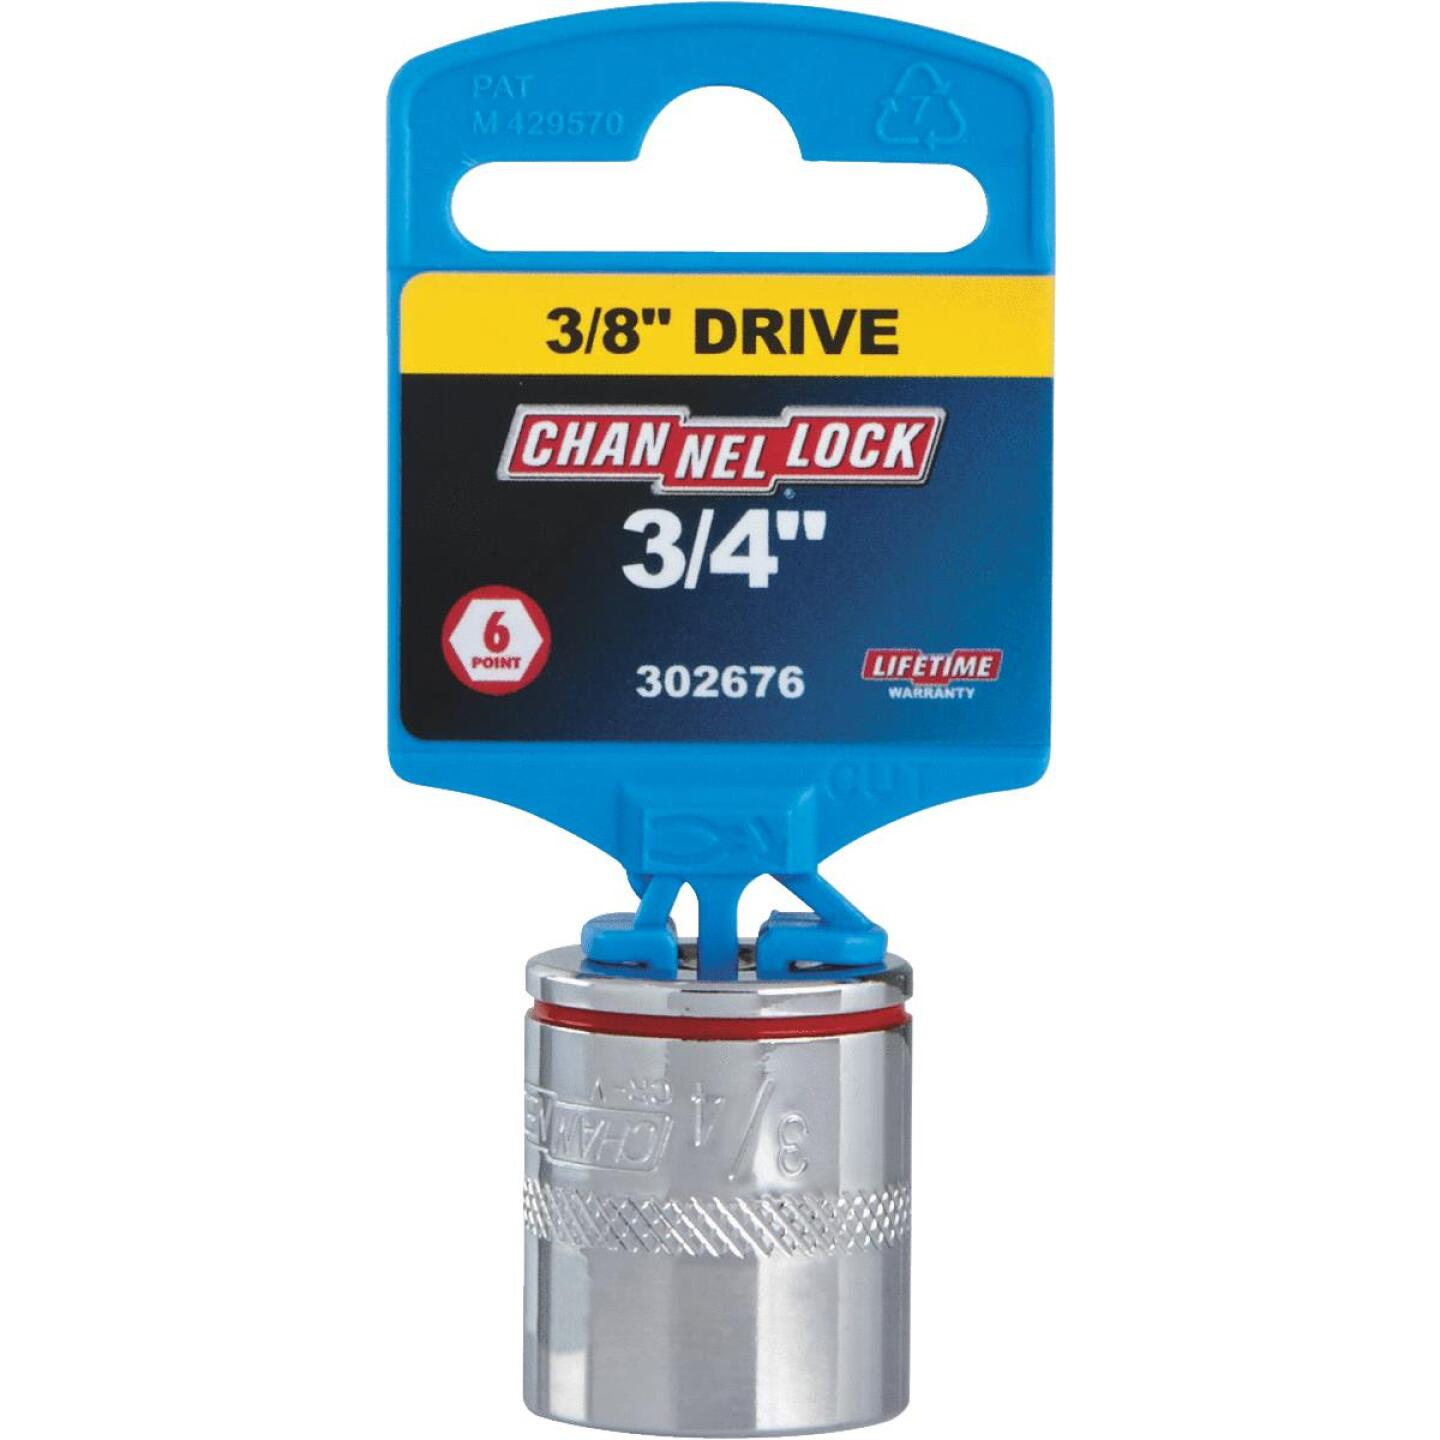 Channellock 3/8 In. Drive 3/4 In. 6-Point Shallow Standard Socket Image 2